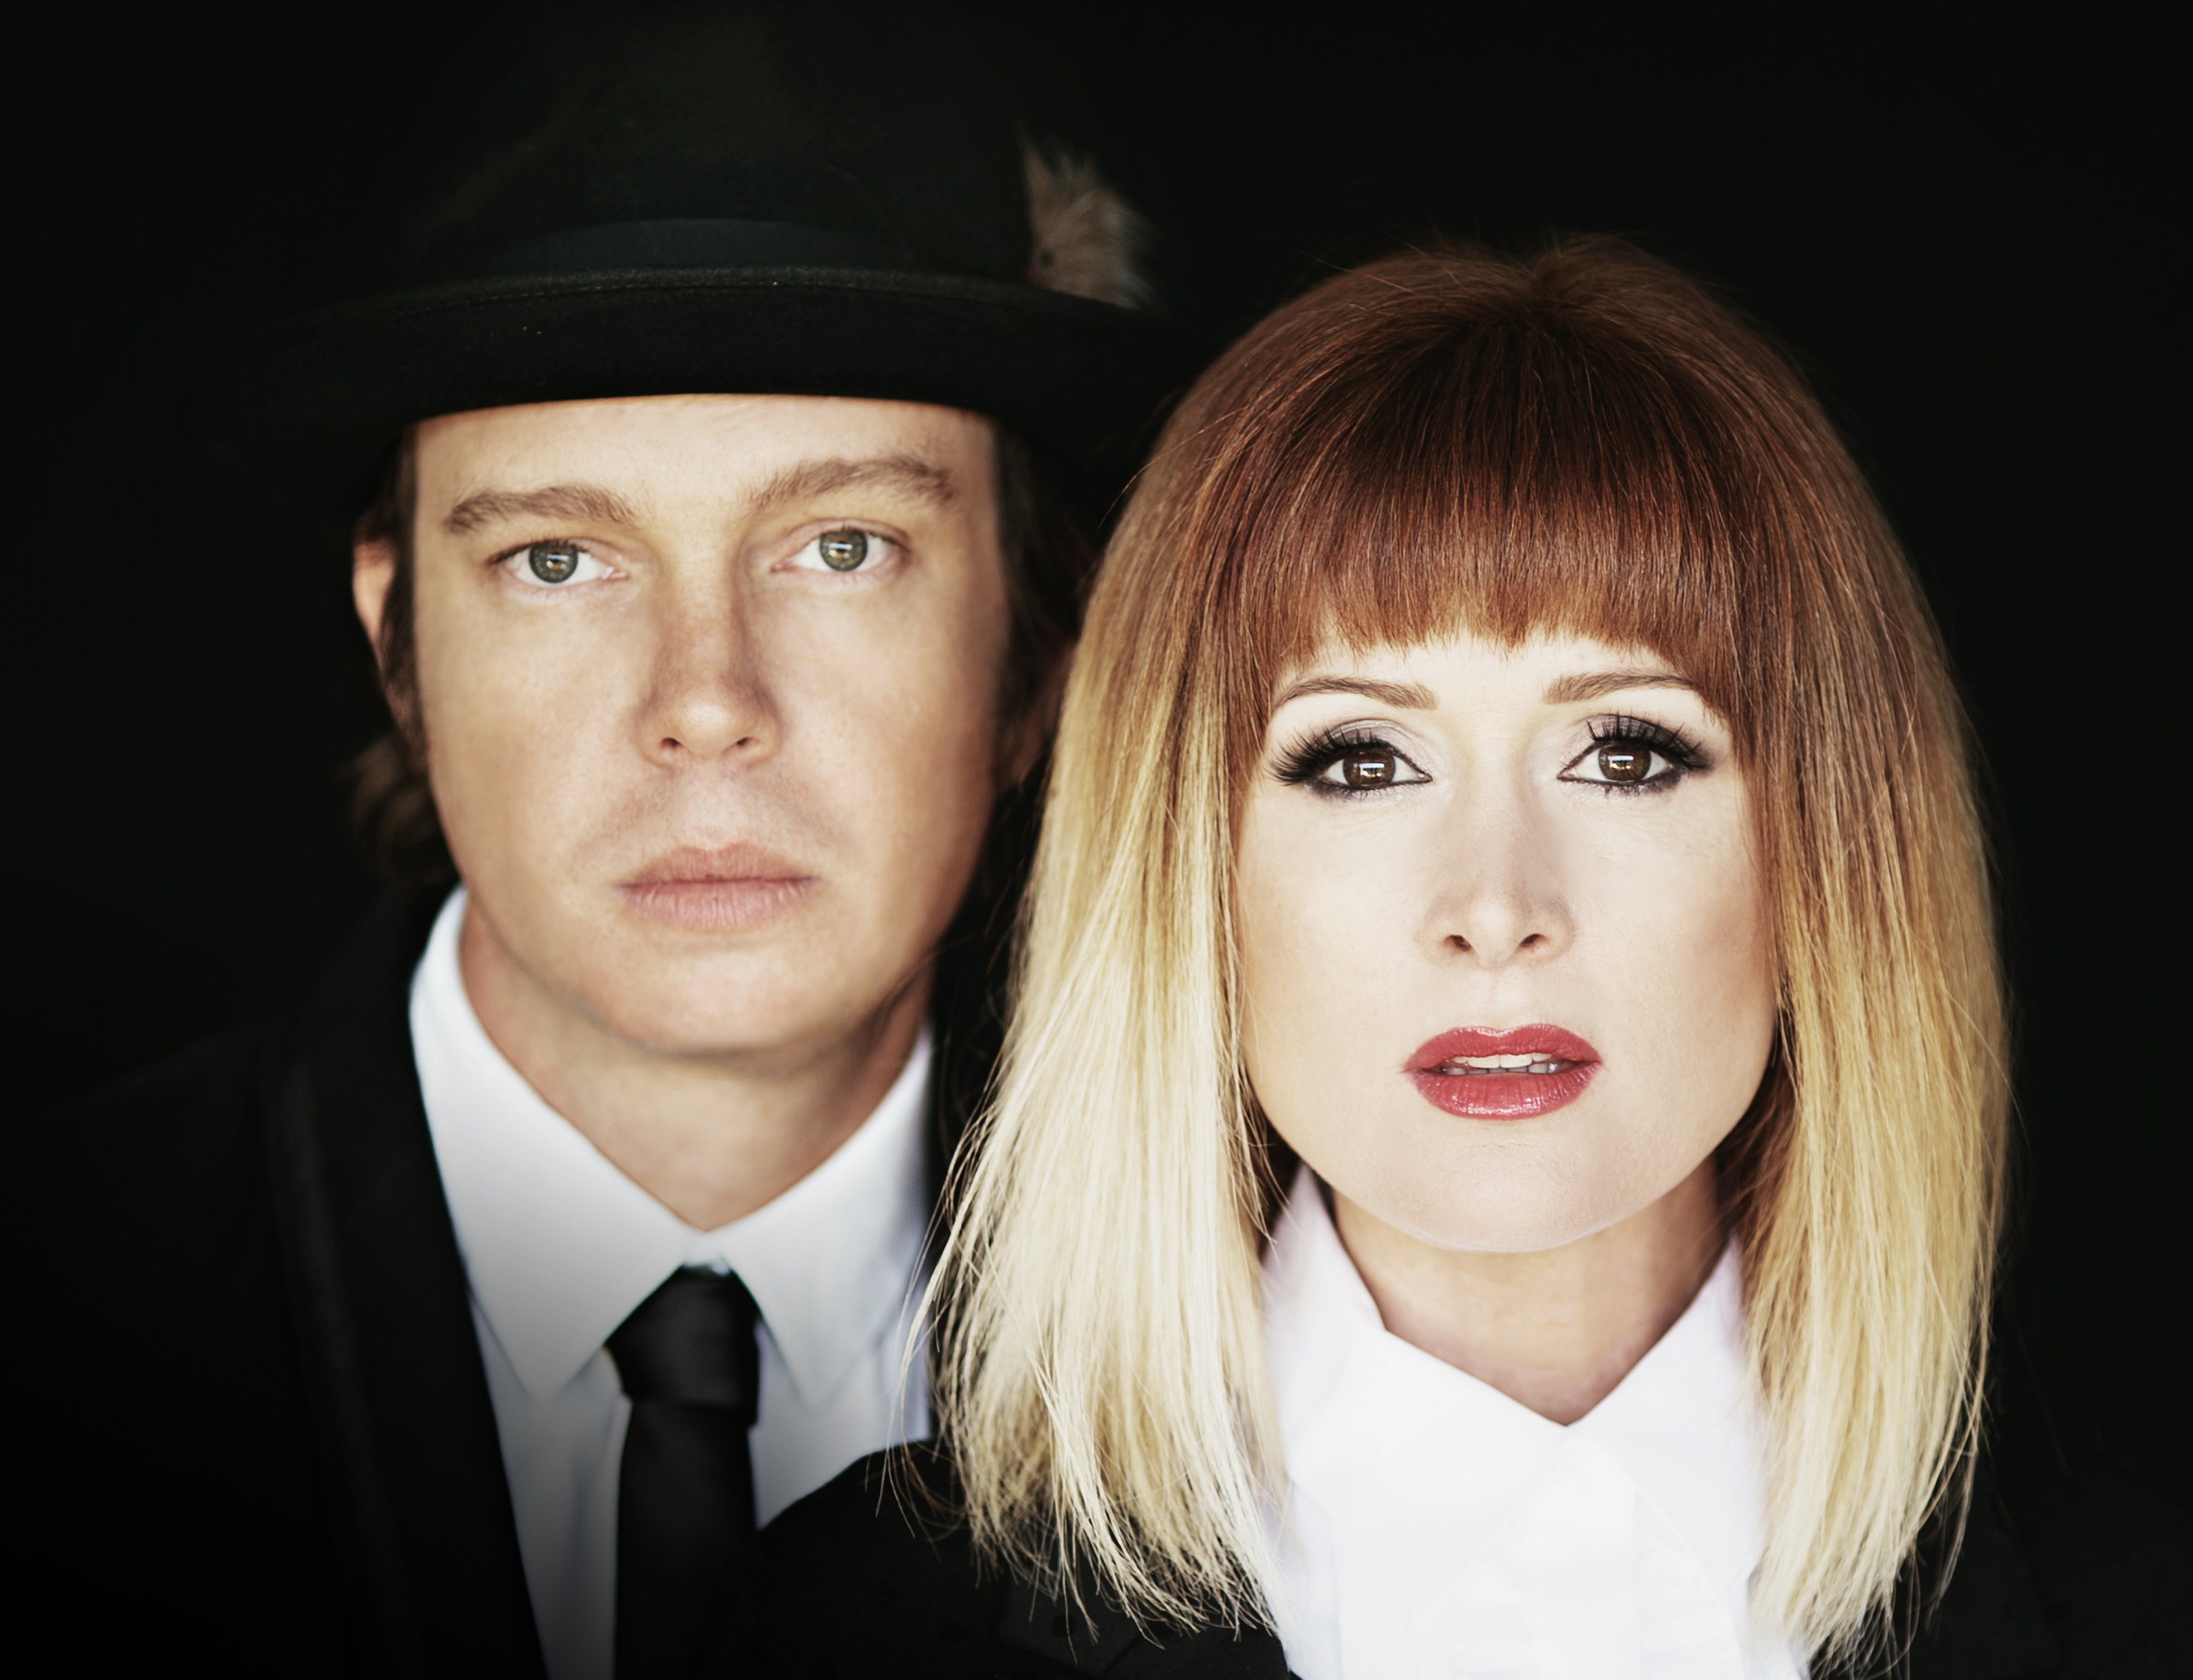 MULTI-AWARD WINNING DUO O'SHEA RELEASE THEIR NEW ALBUM '61-615′ TODAY!